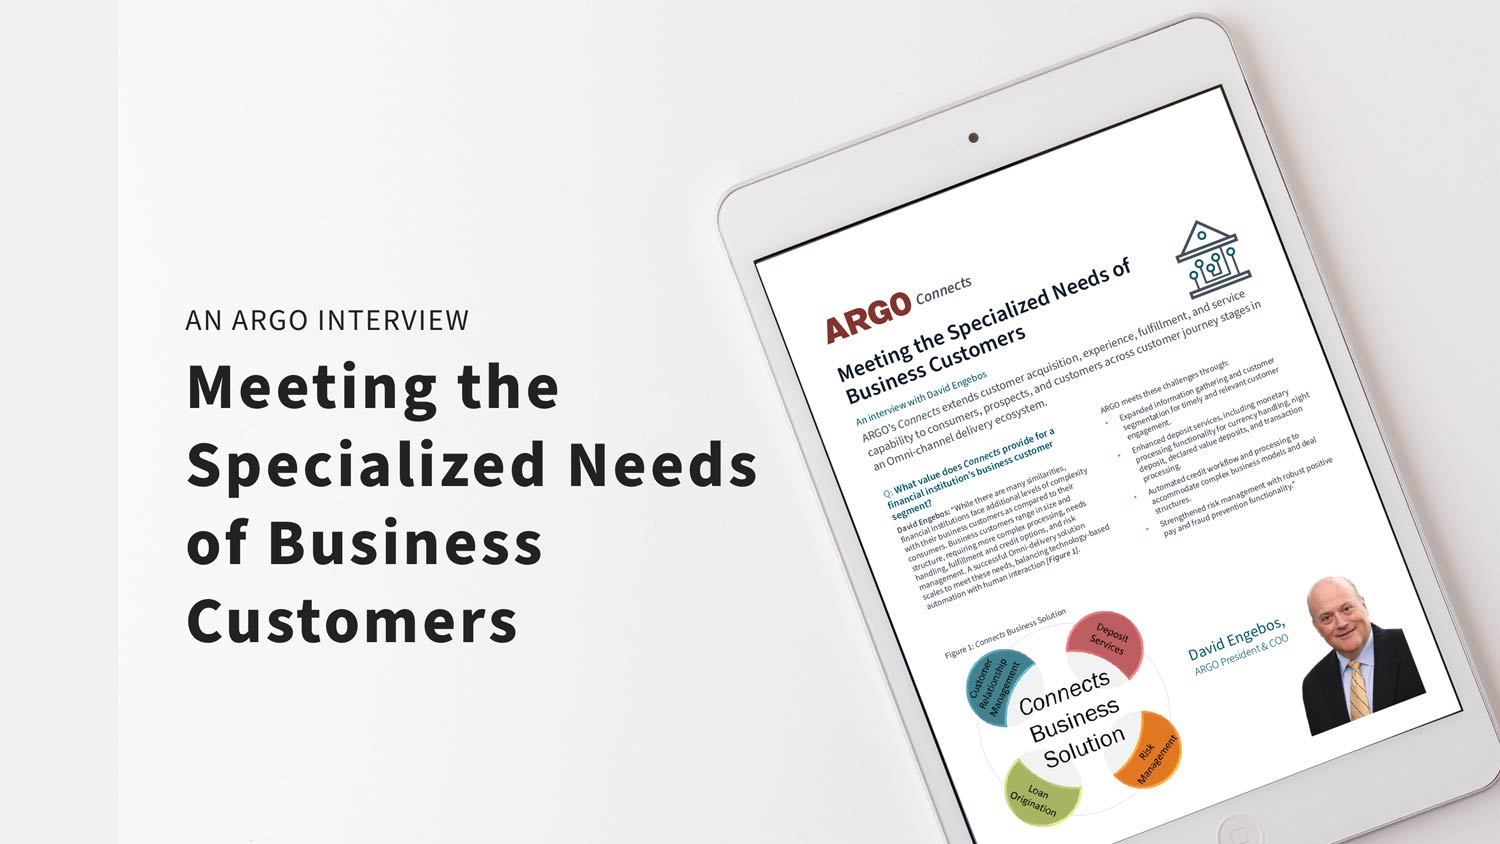 Meeting-the-Specialized-Needs-of-Business-Customers